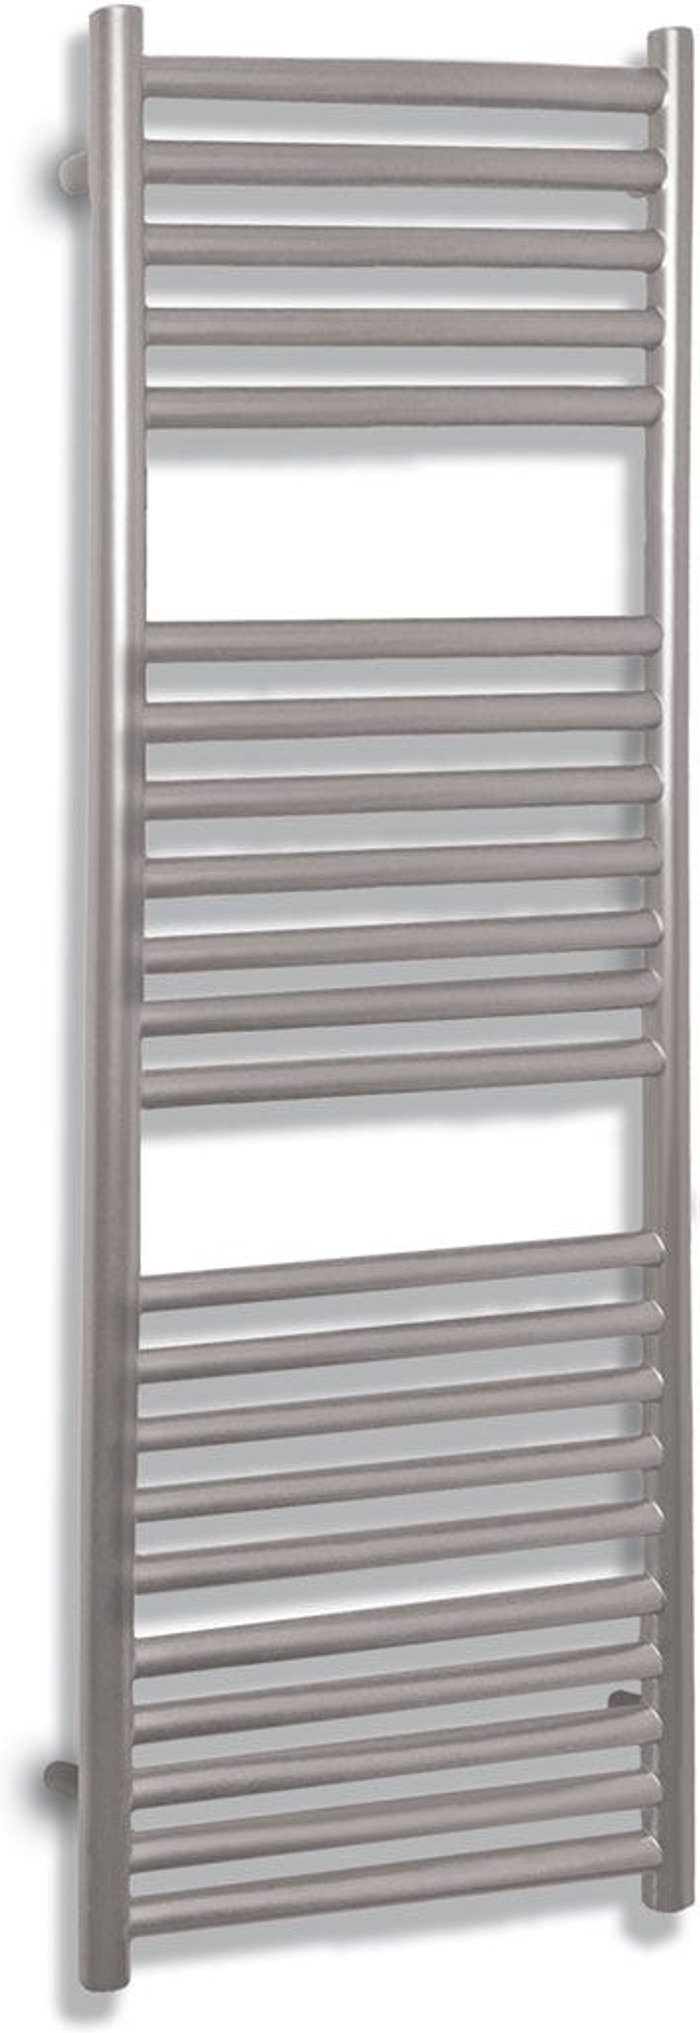 Towelrads Towelrads Heating Style Joanna Towel Warmer 800mm x 500mm - Silver